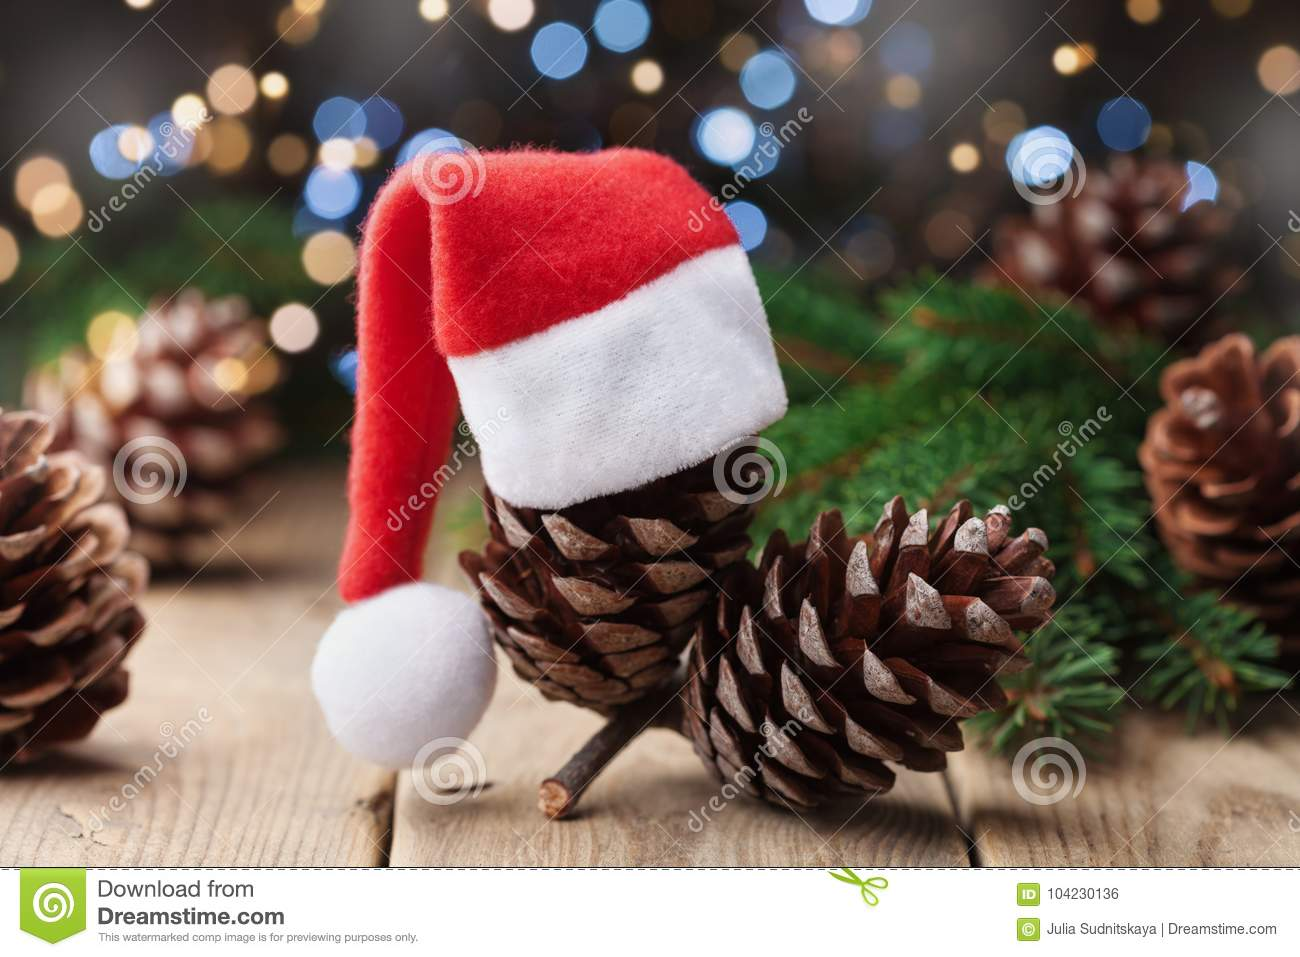 Pine cone decorated Santa hat and fir tree branch on rustic background. Christmas greeting card.